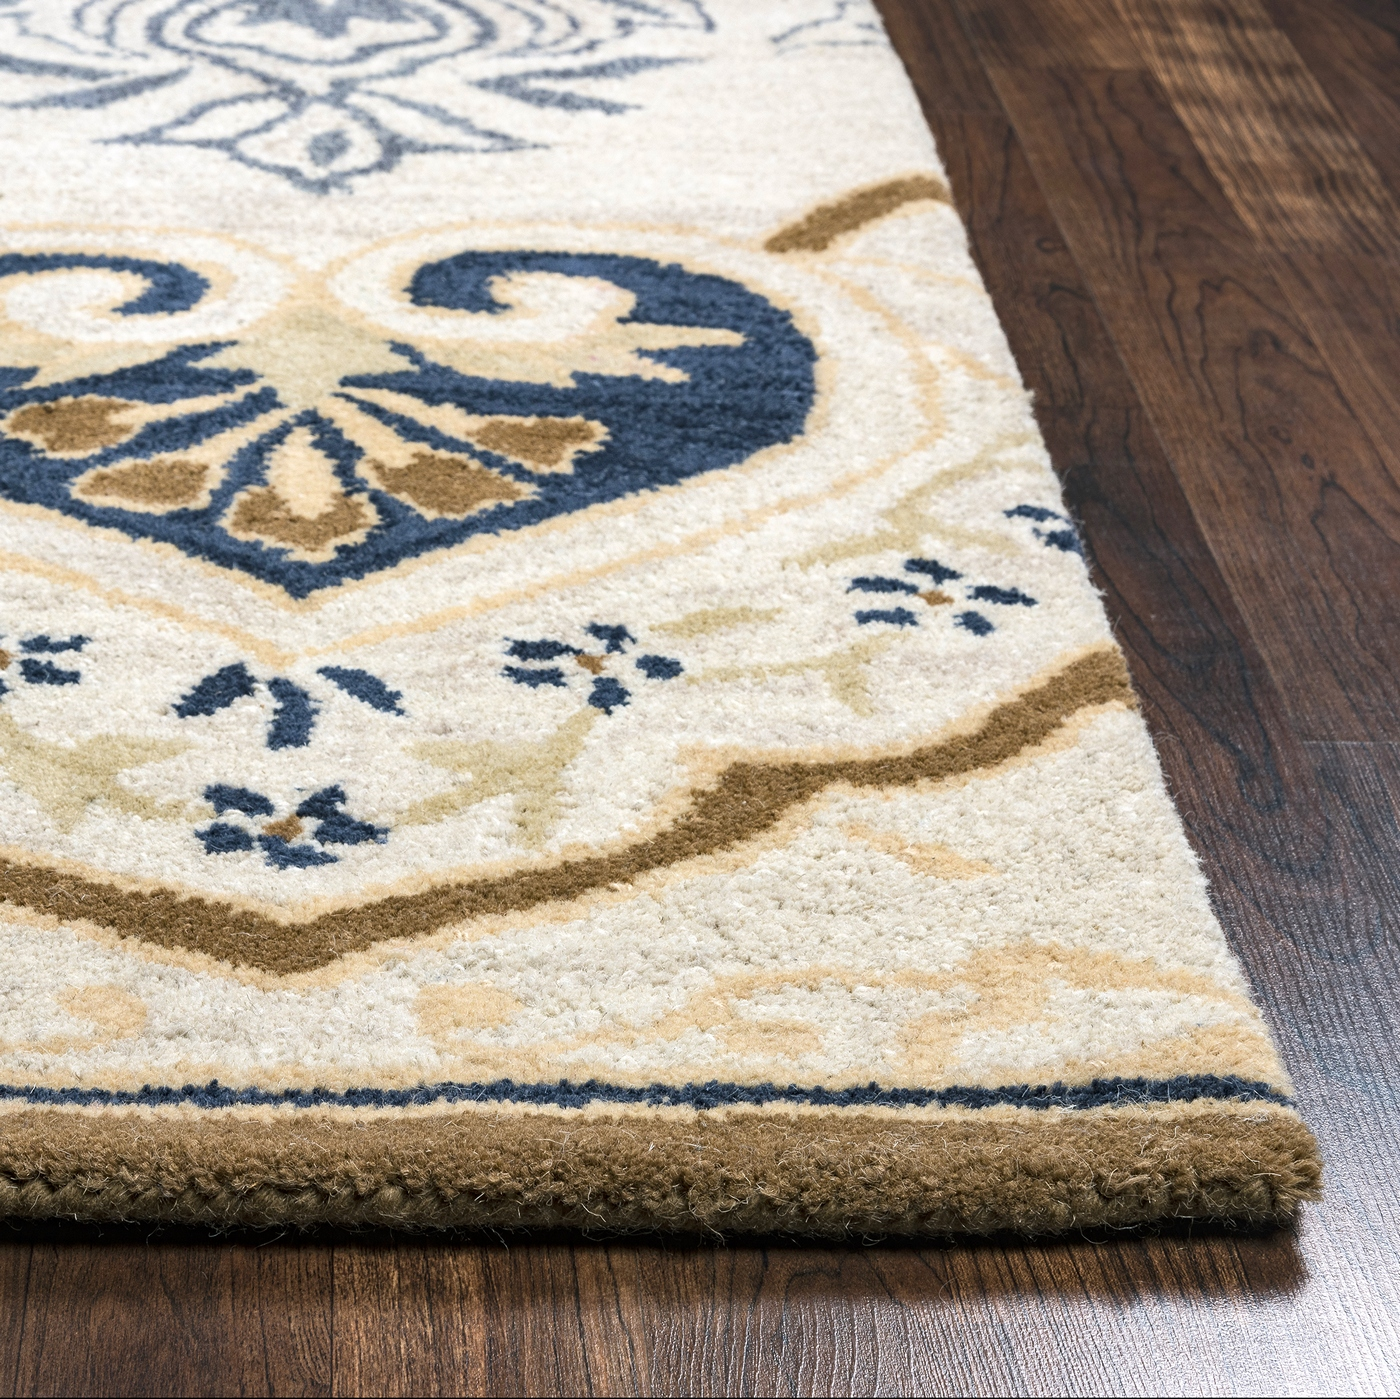 Valintino Spades Medallion Wool Runner Rug In Gray Navy